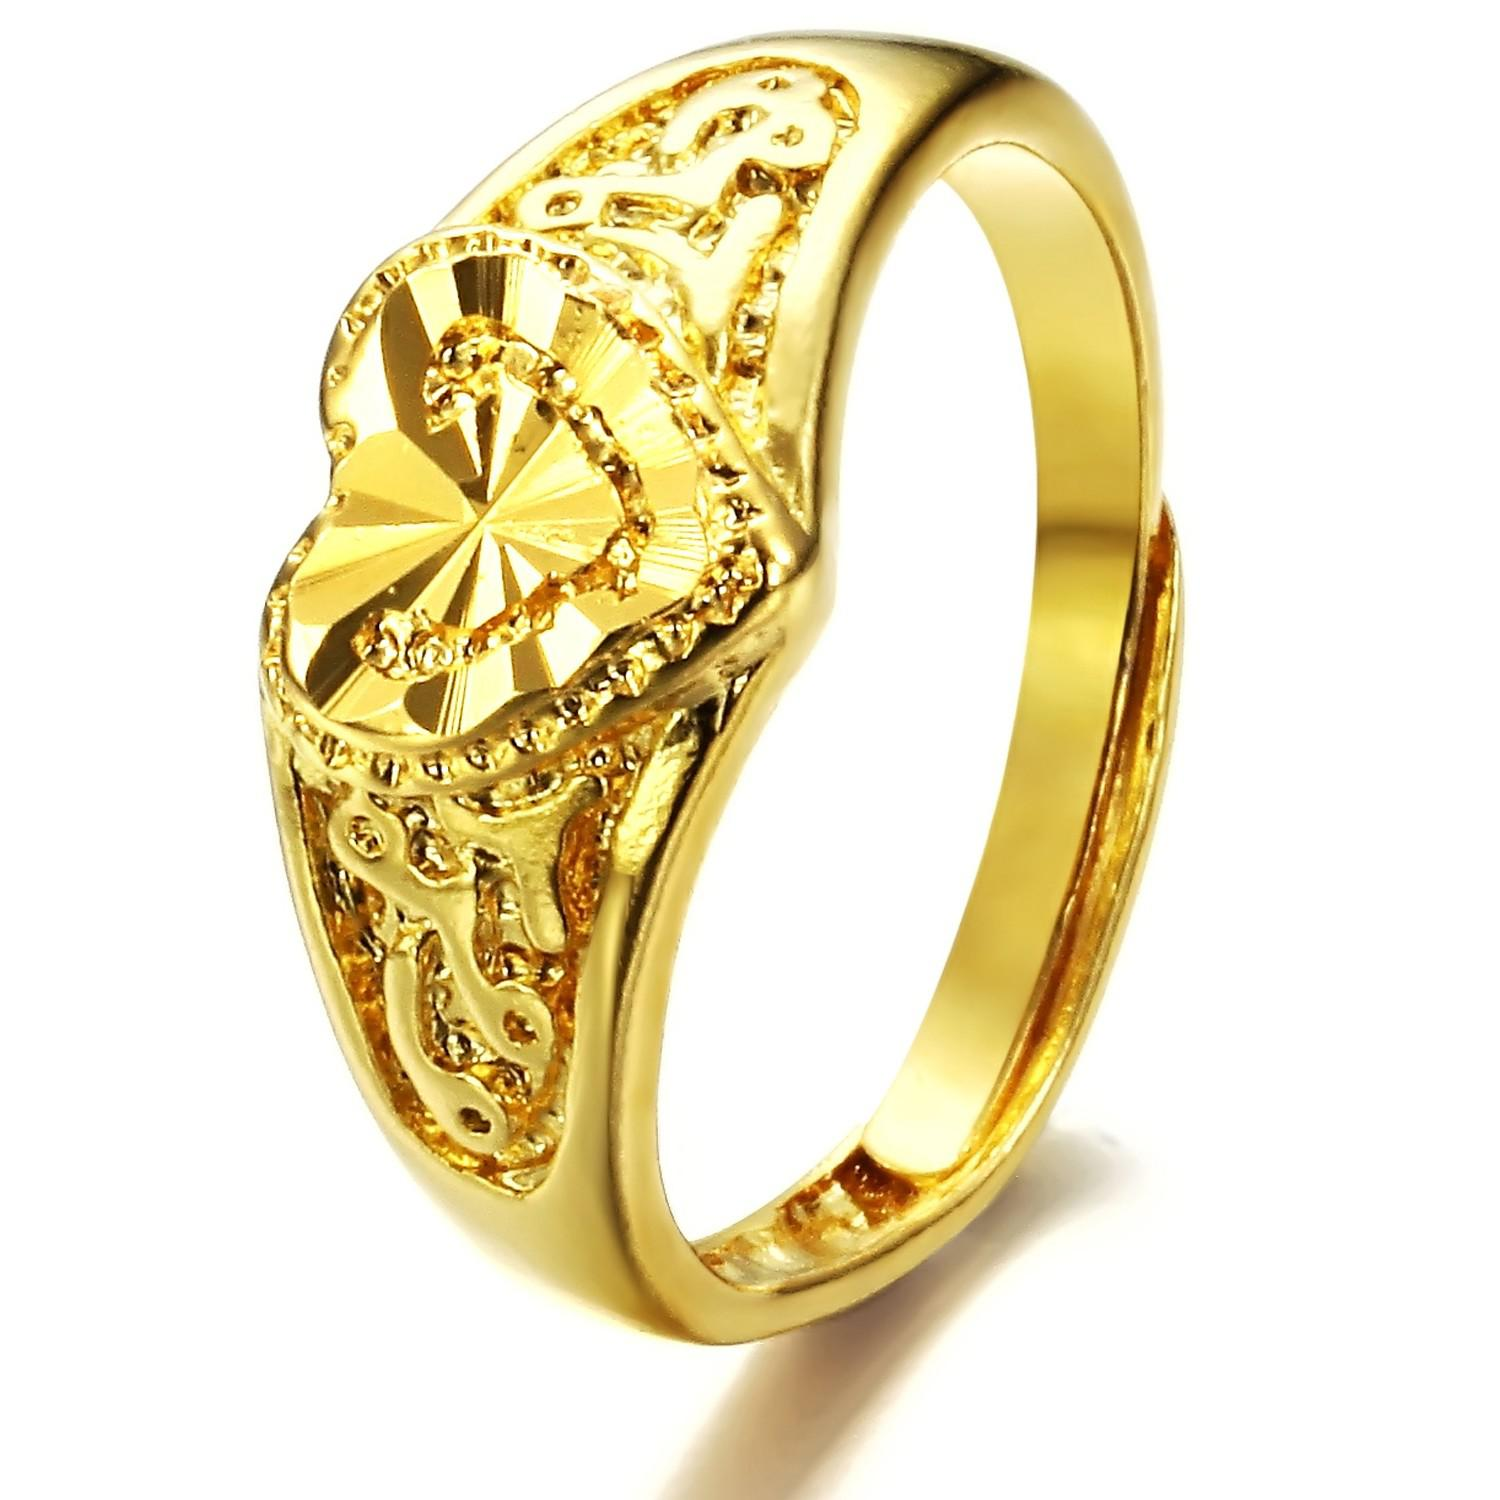 2018 Hot Sale Plating 18k Yellow Gold Rings Adjustable Wedding Ring